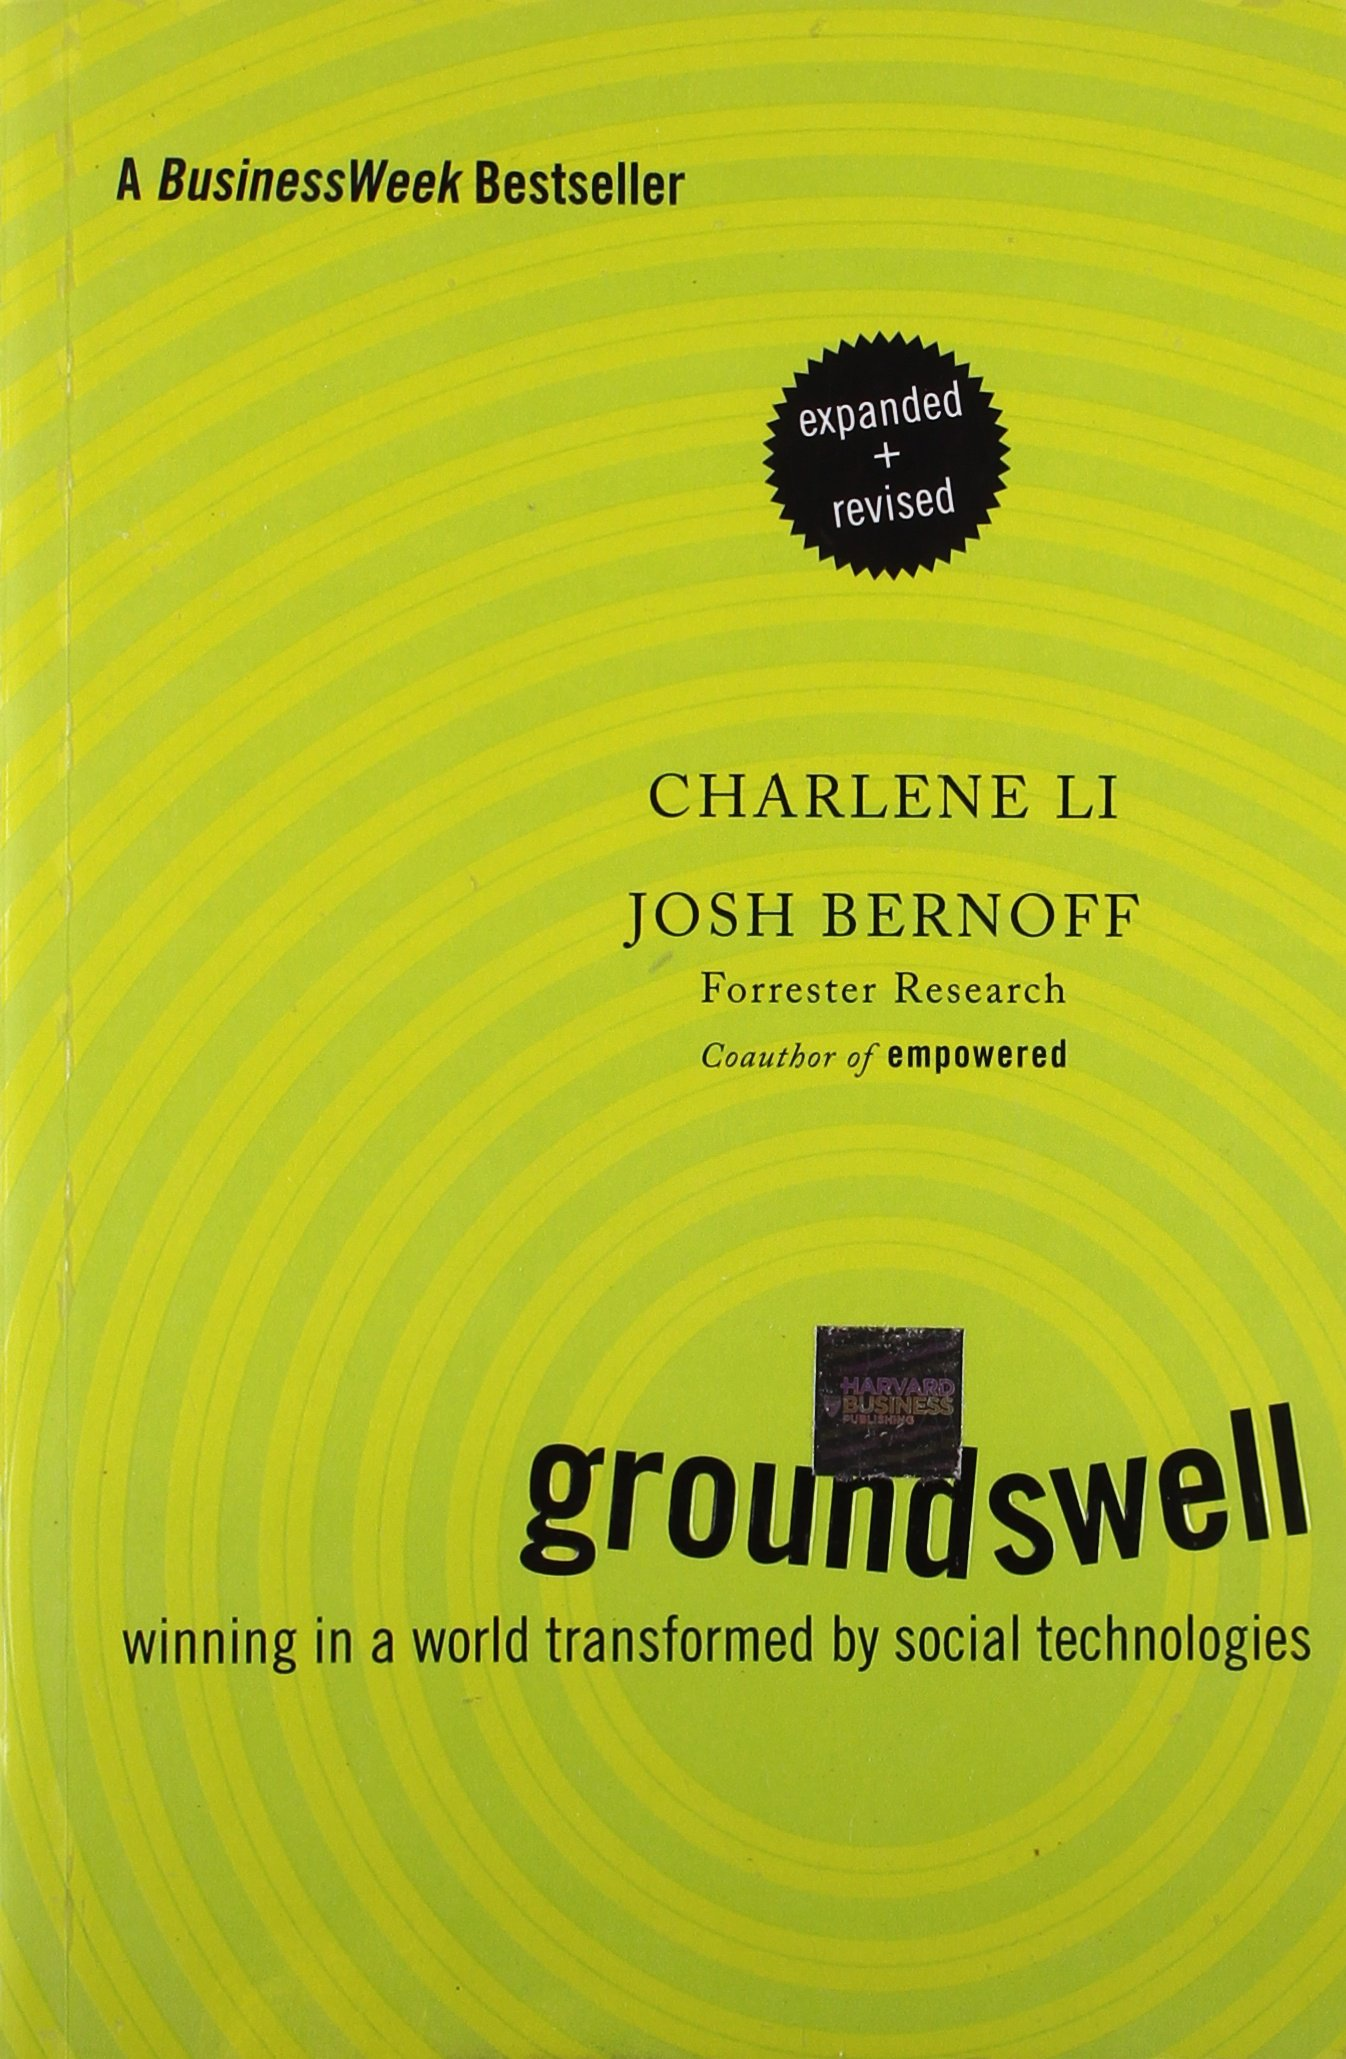 Groundswell ISBN-13 9781422161982